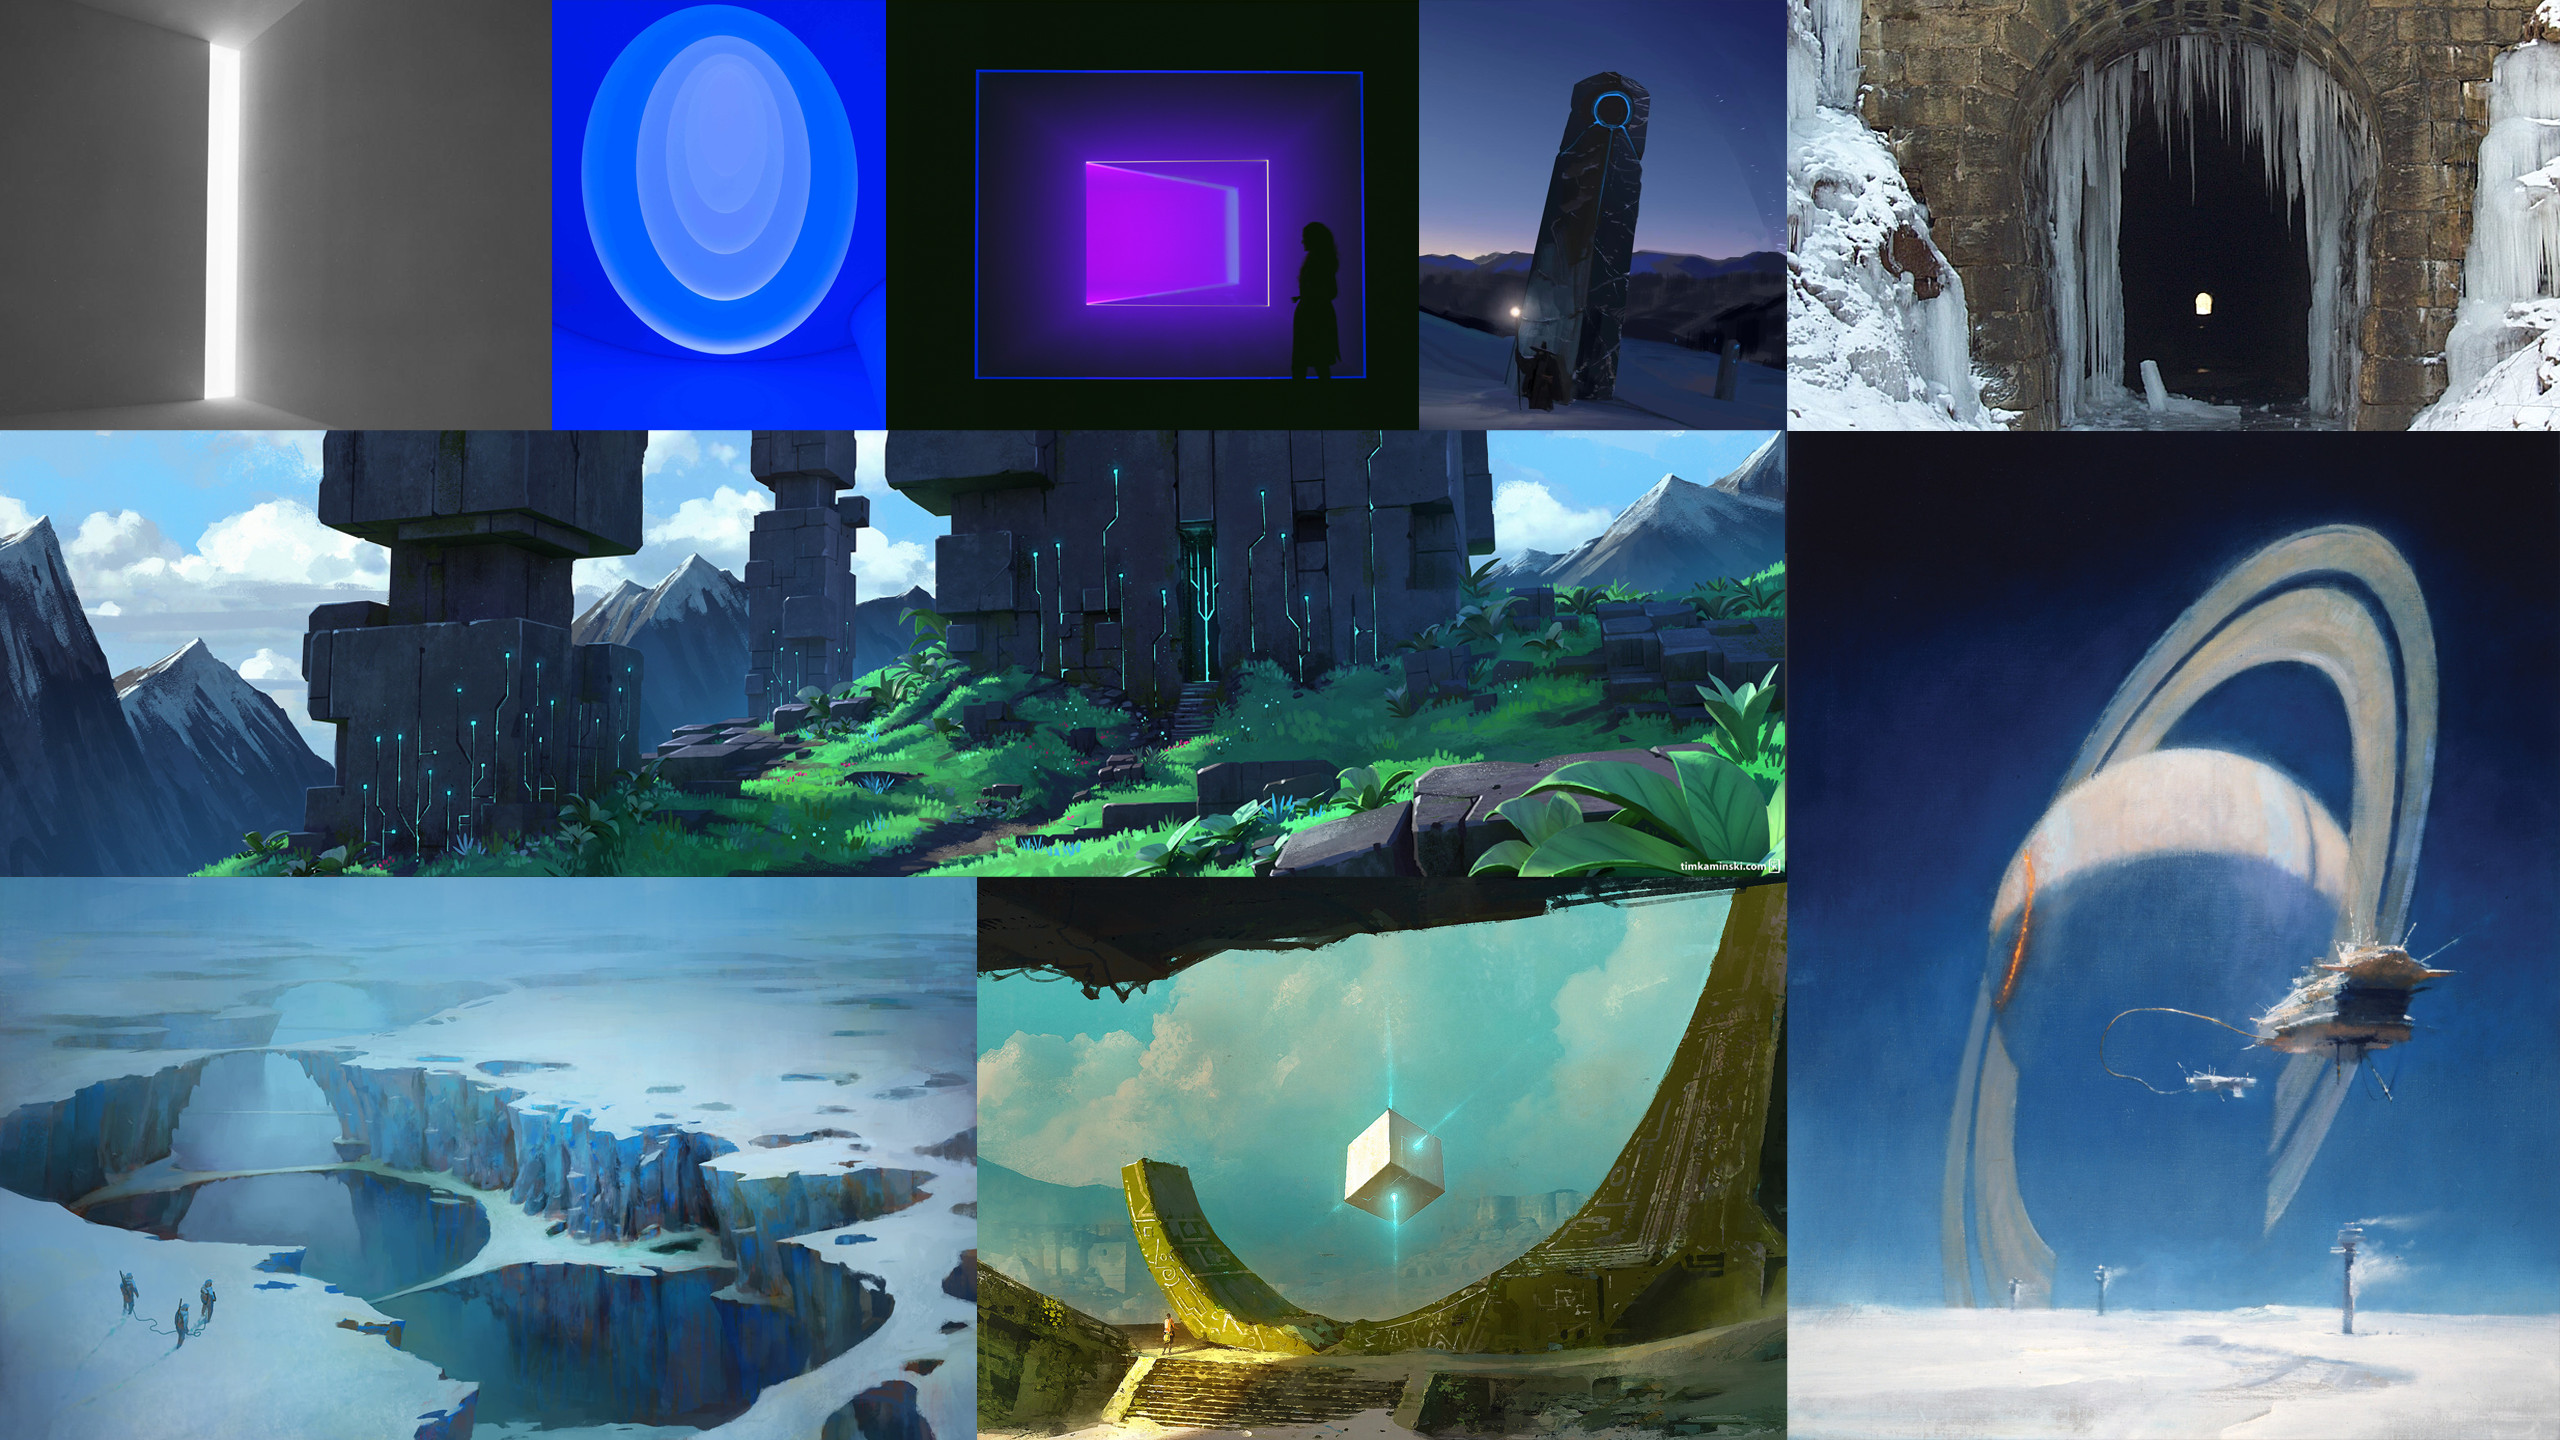 Some of the inspirations for Triad